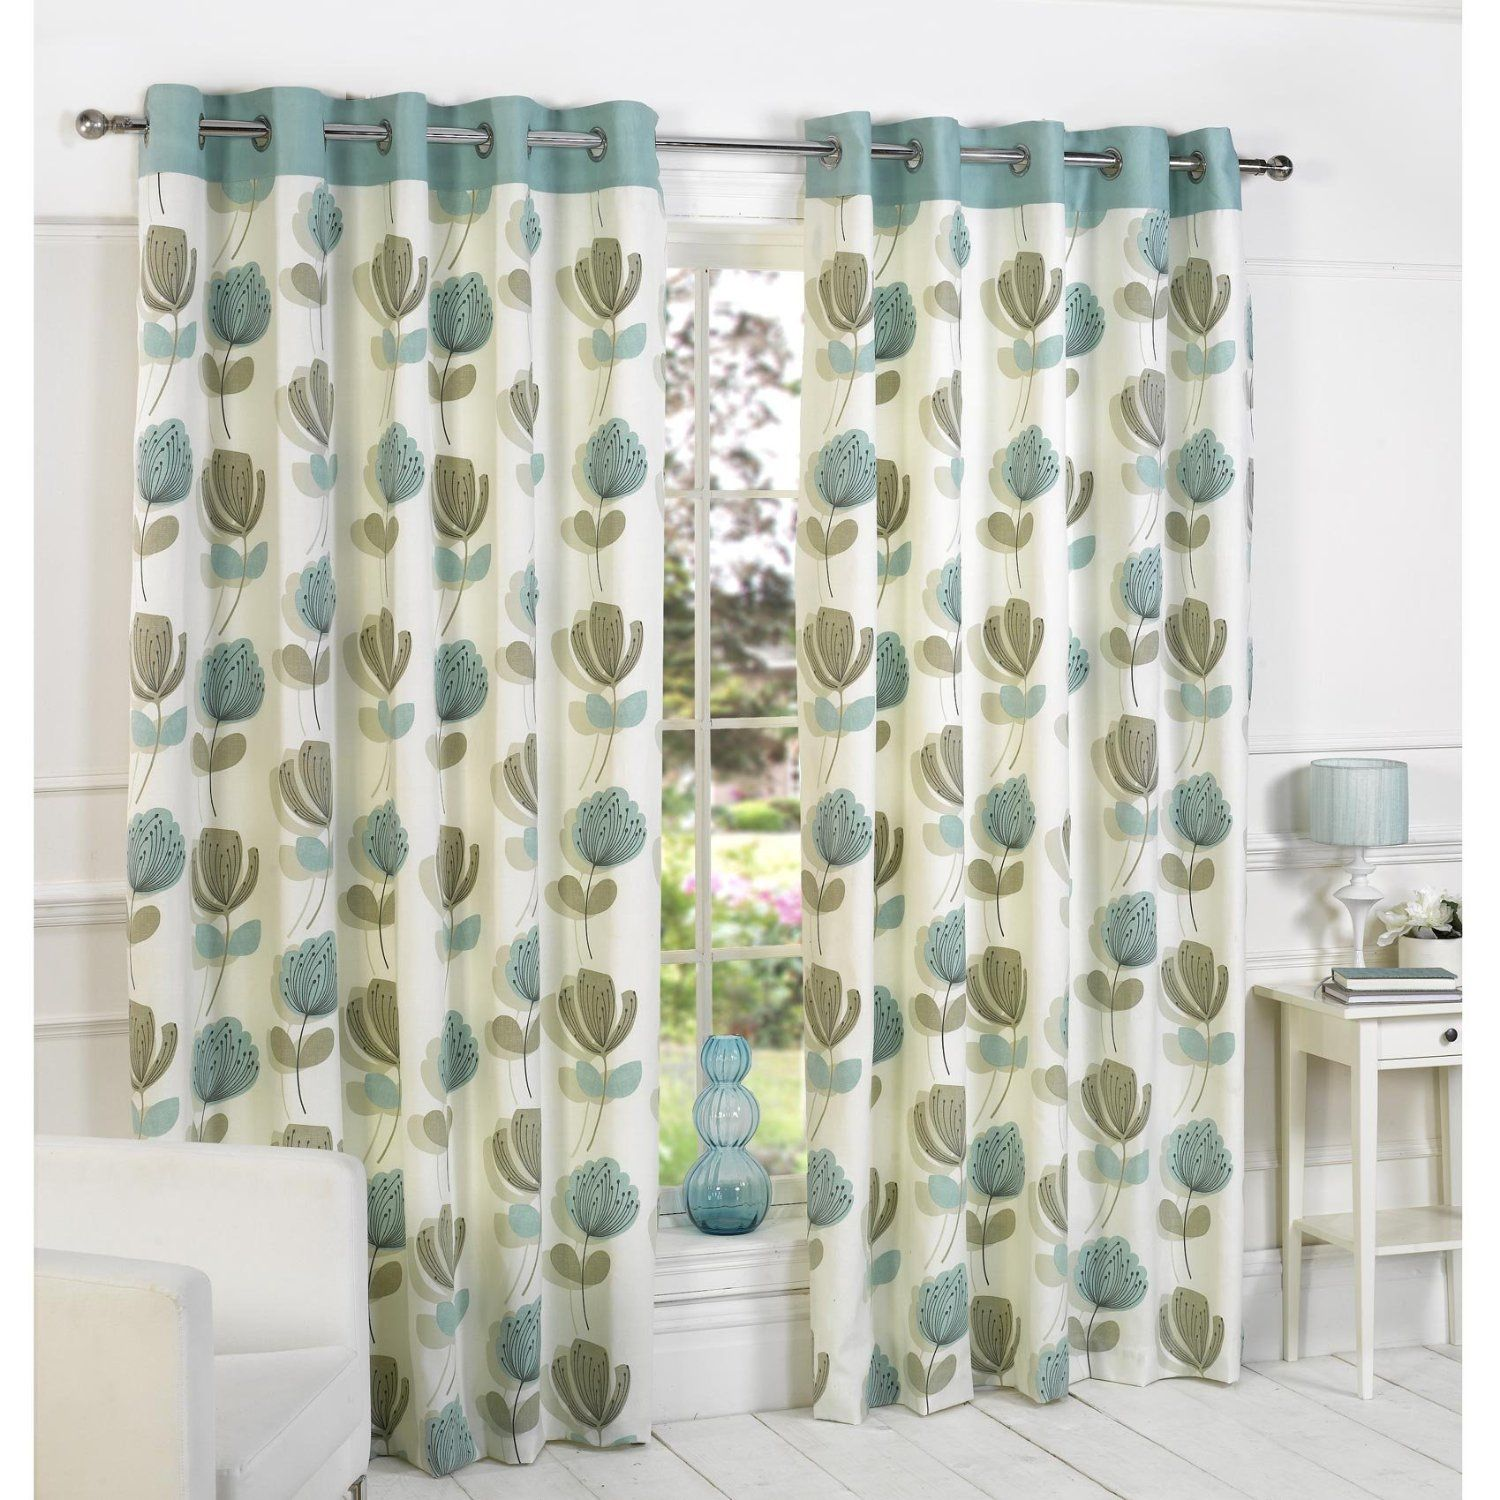 Kitchen Curtains Amazon Co Uk: Lotti Modern Retro Floral Printed Design Readymade Lined